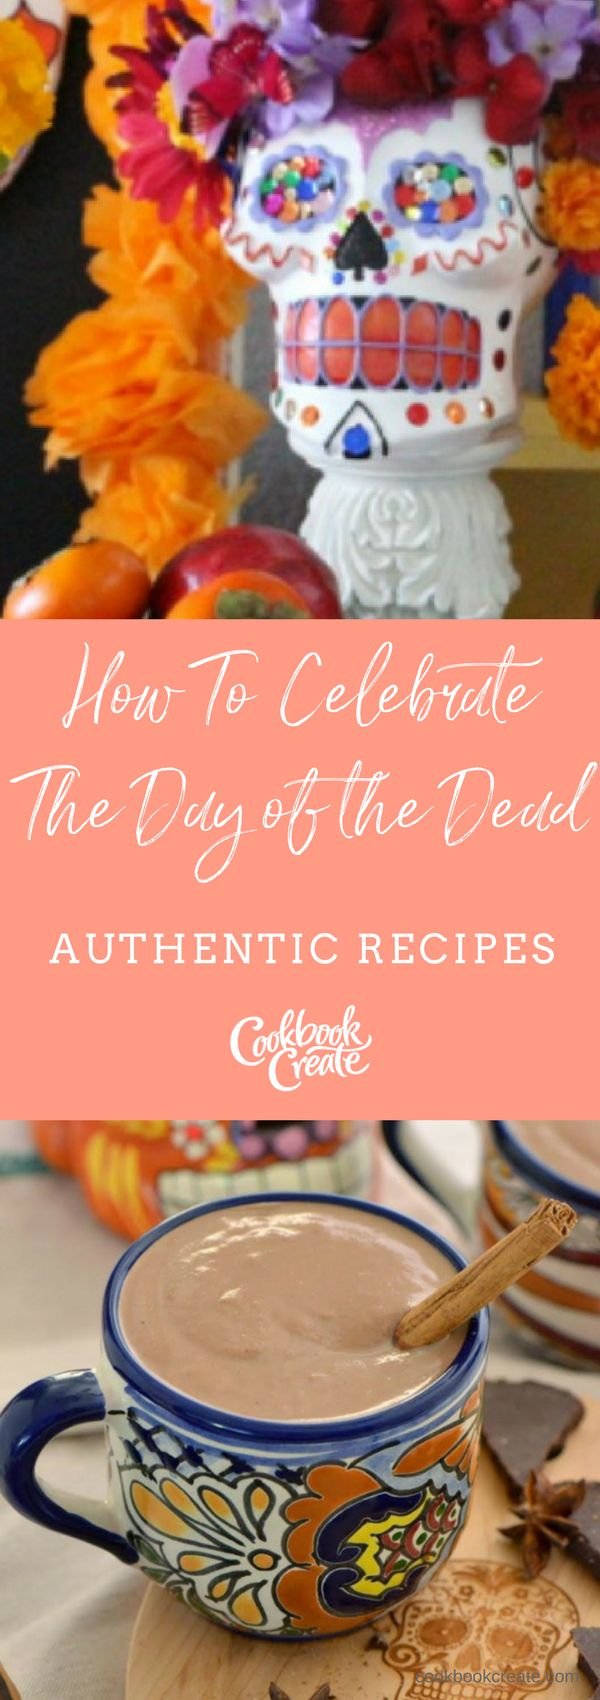 How to Celebrate The Day of the Dead: Authentic Recipes | Create your personalized cookbook with your recipes and photos at www.CookbookCreate.com